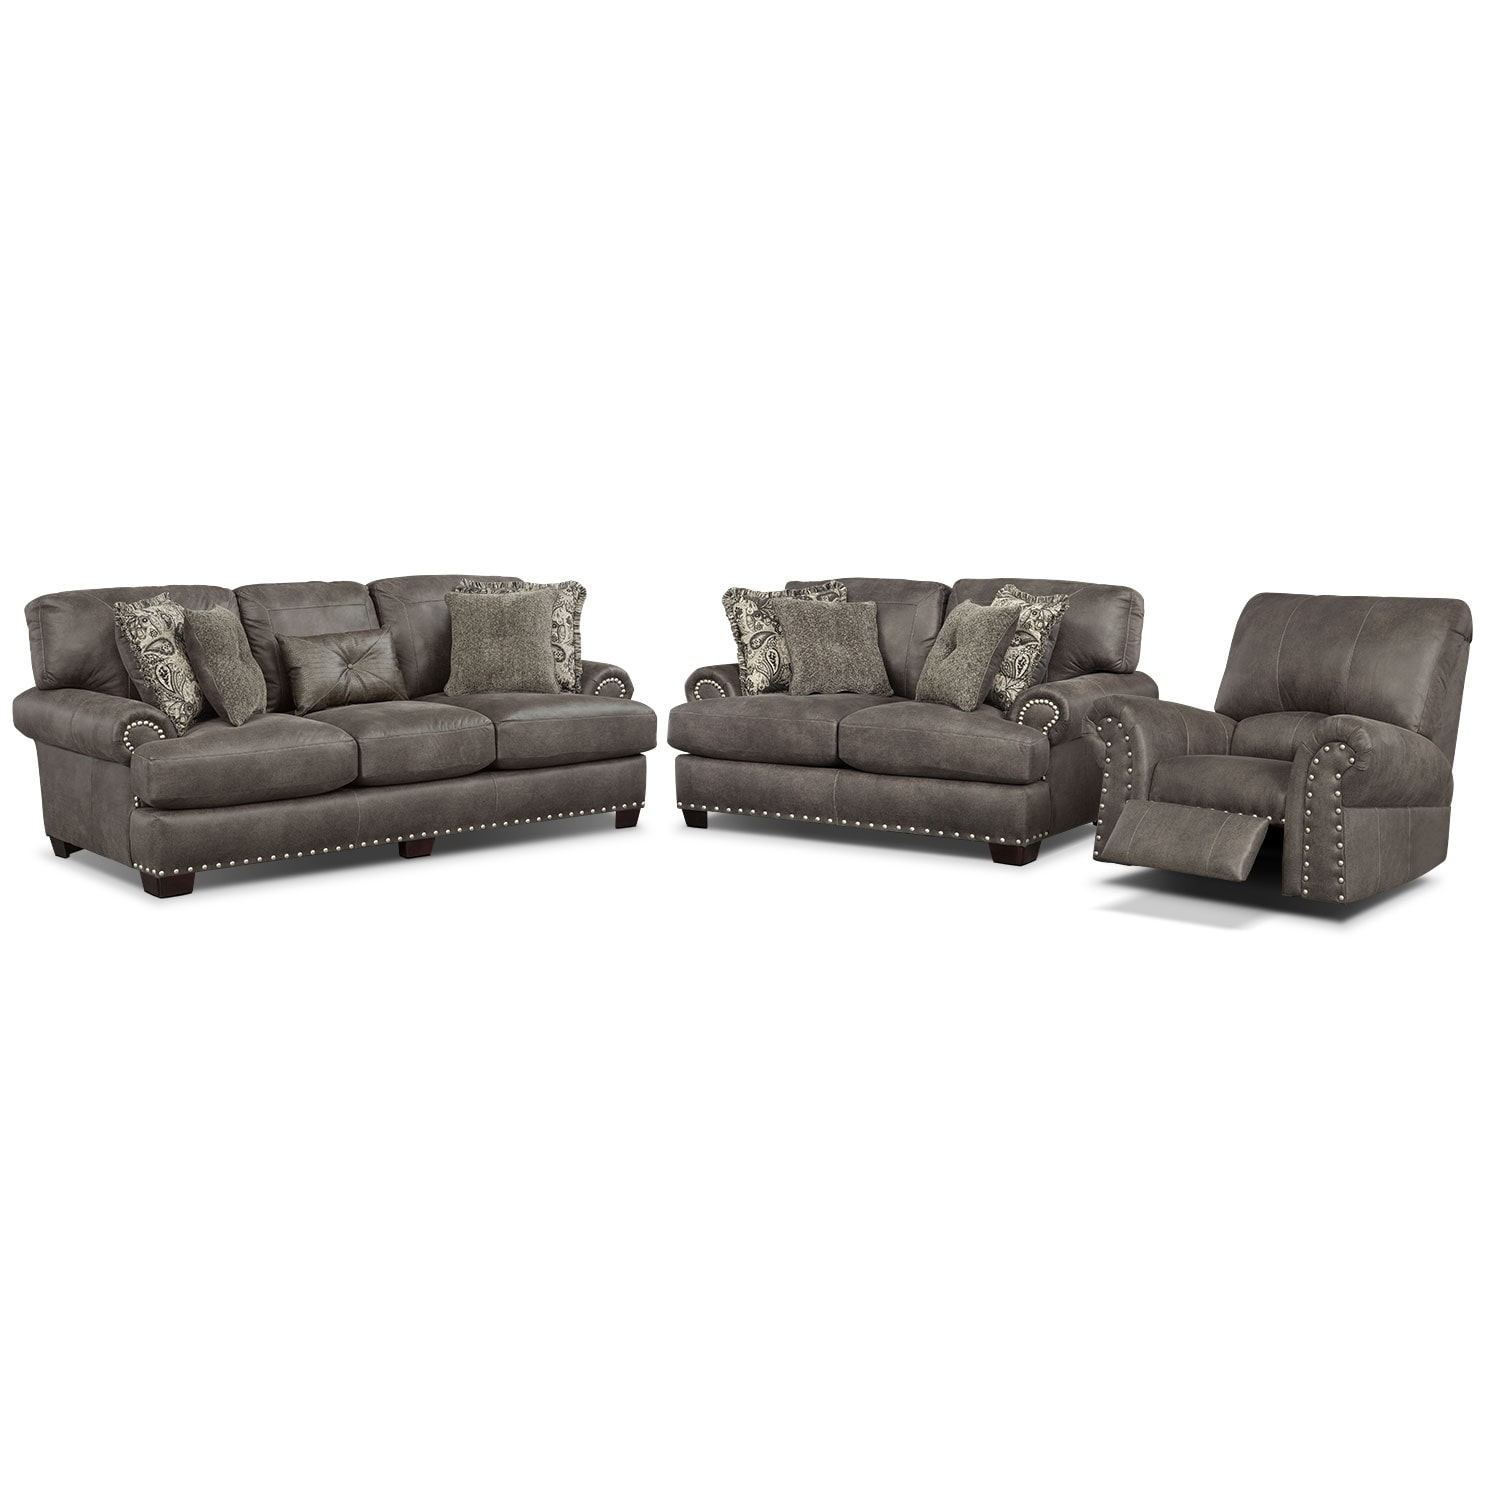 Burlington Sofa, Loveseat and Recliner Set - Steel